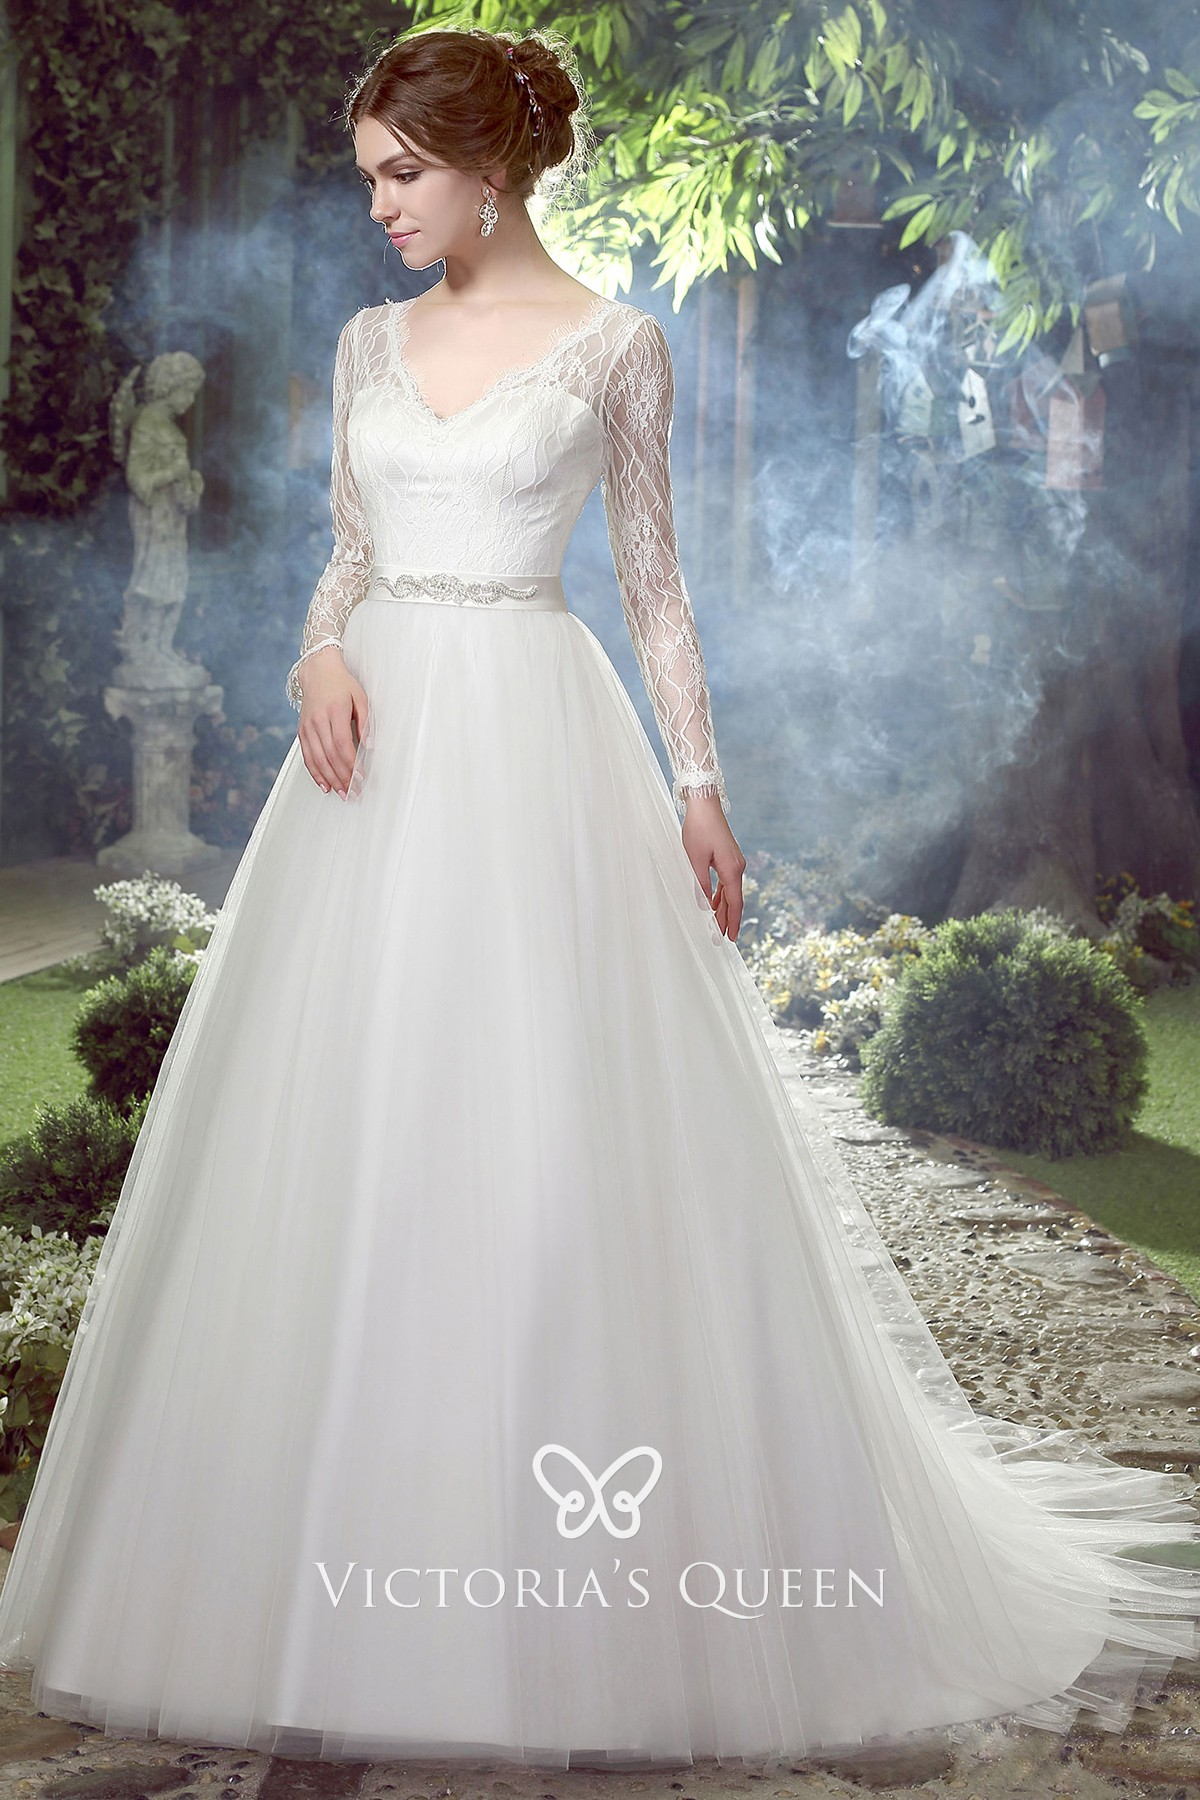 Illusion Long Sleeve Sweetheart Ball Gown Wedding Dress Vq,Wedding Dress In Chicago